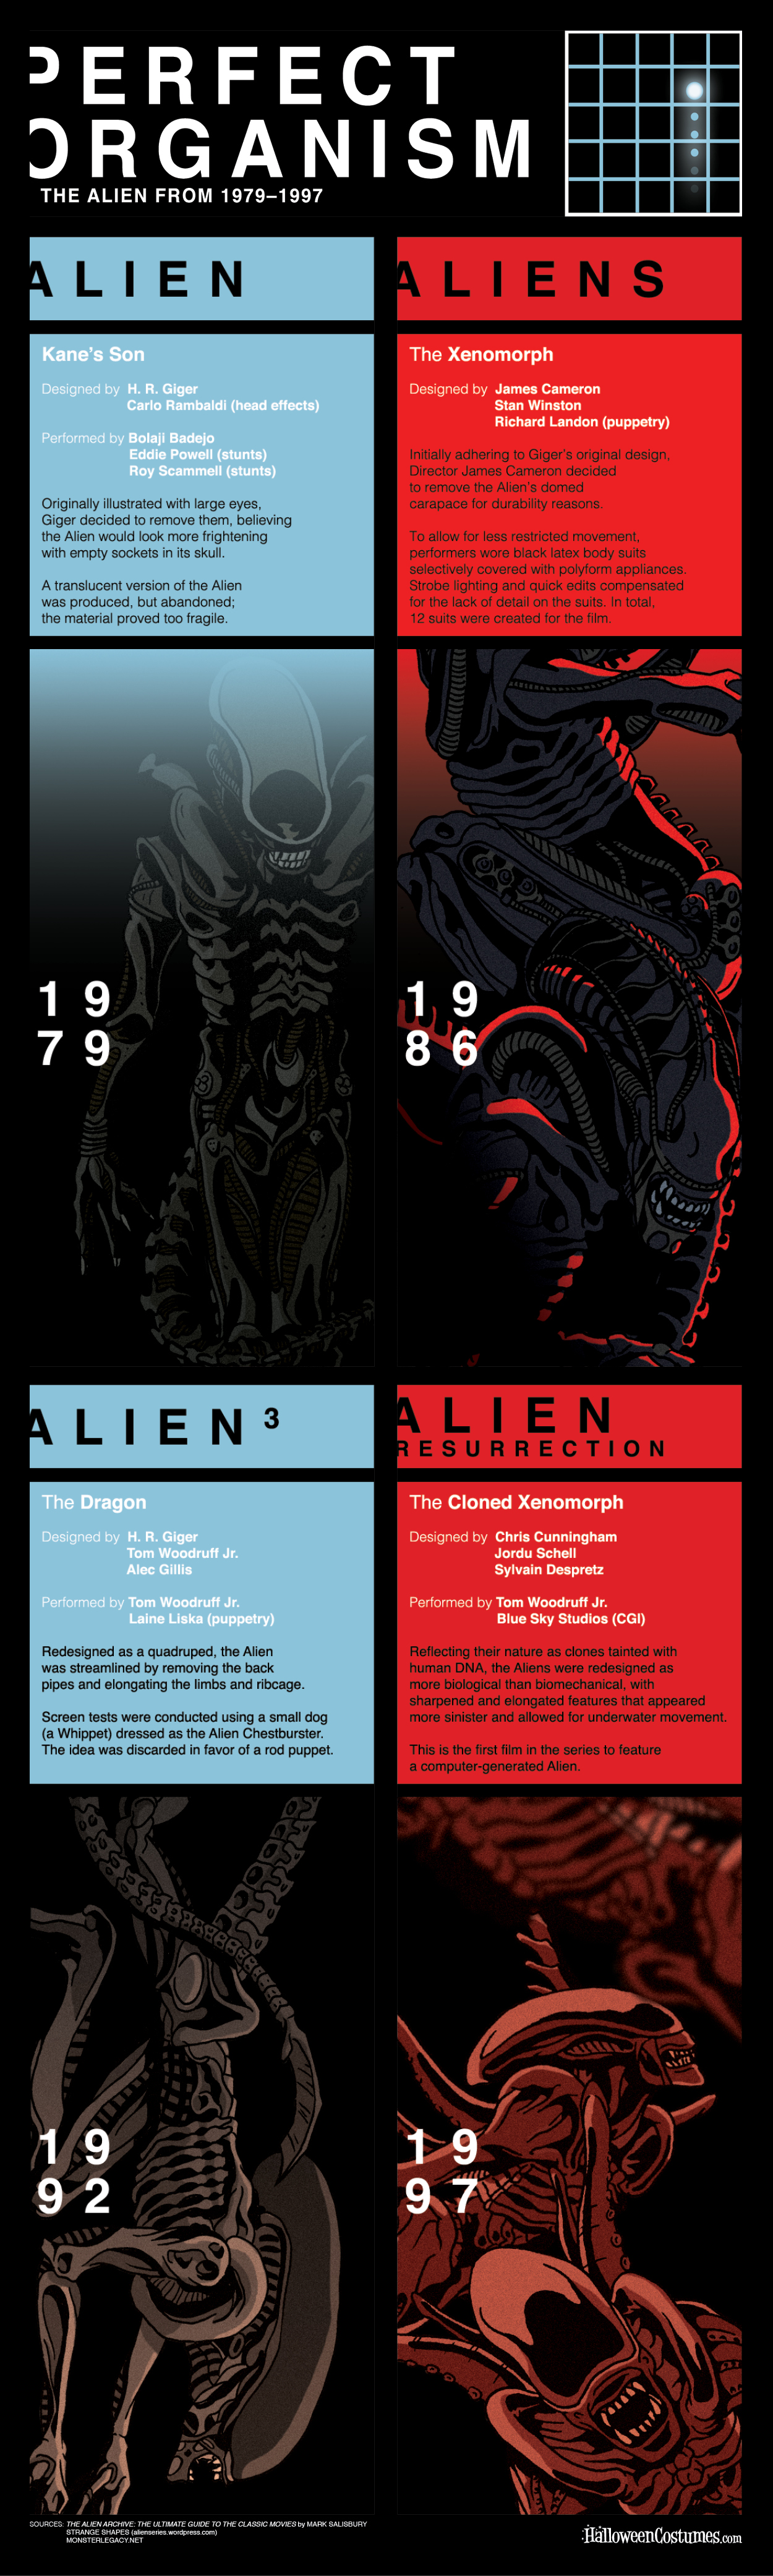 Evolution of the Alien Infographic